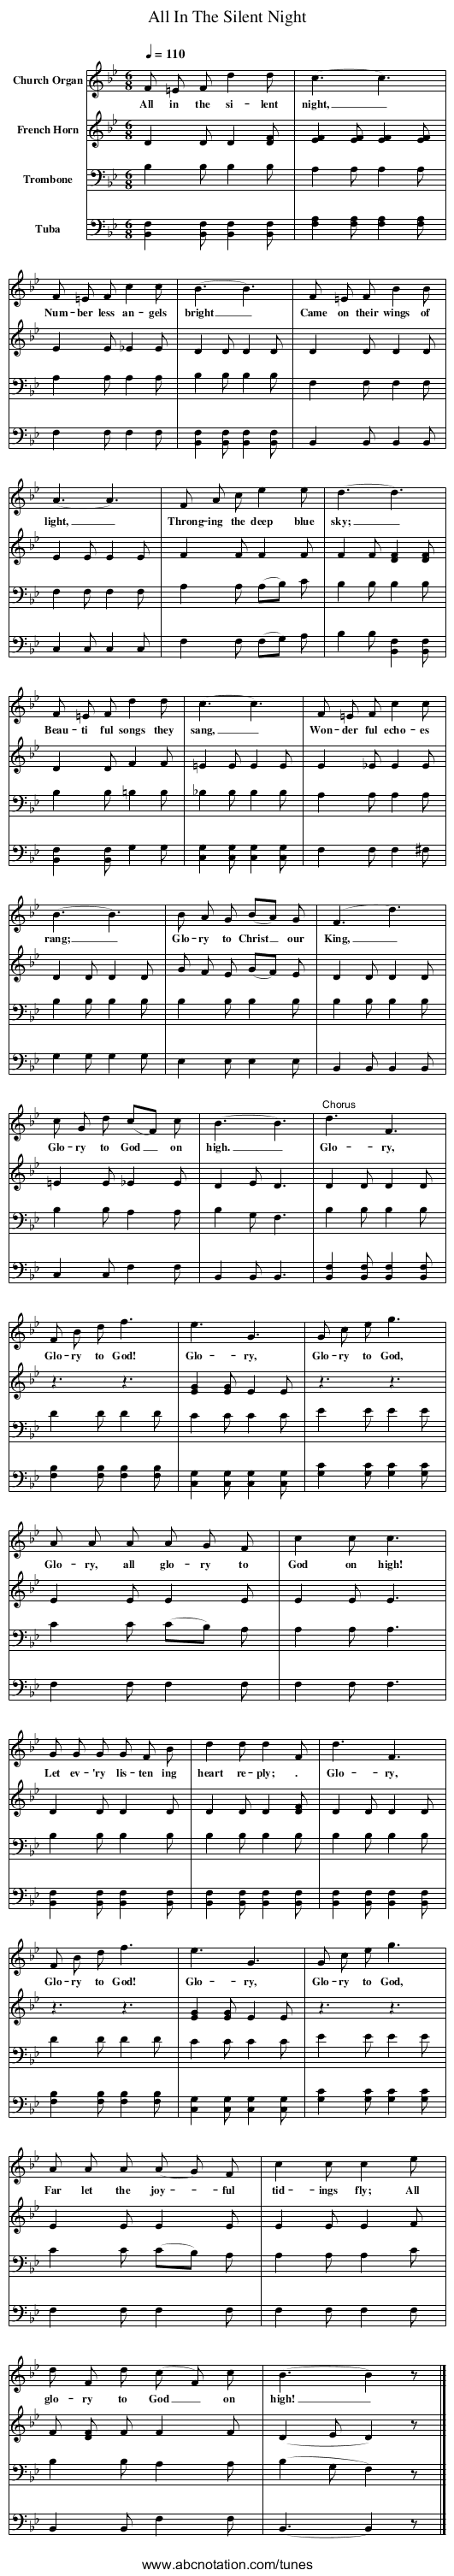 All In The Silent Night - staff notation